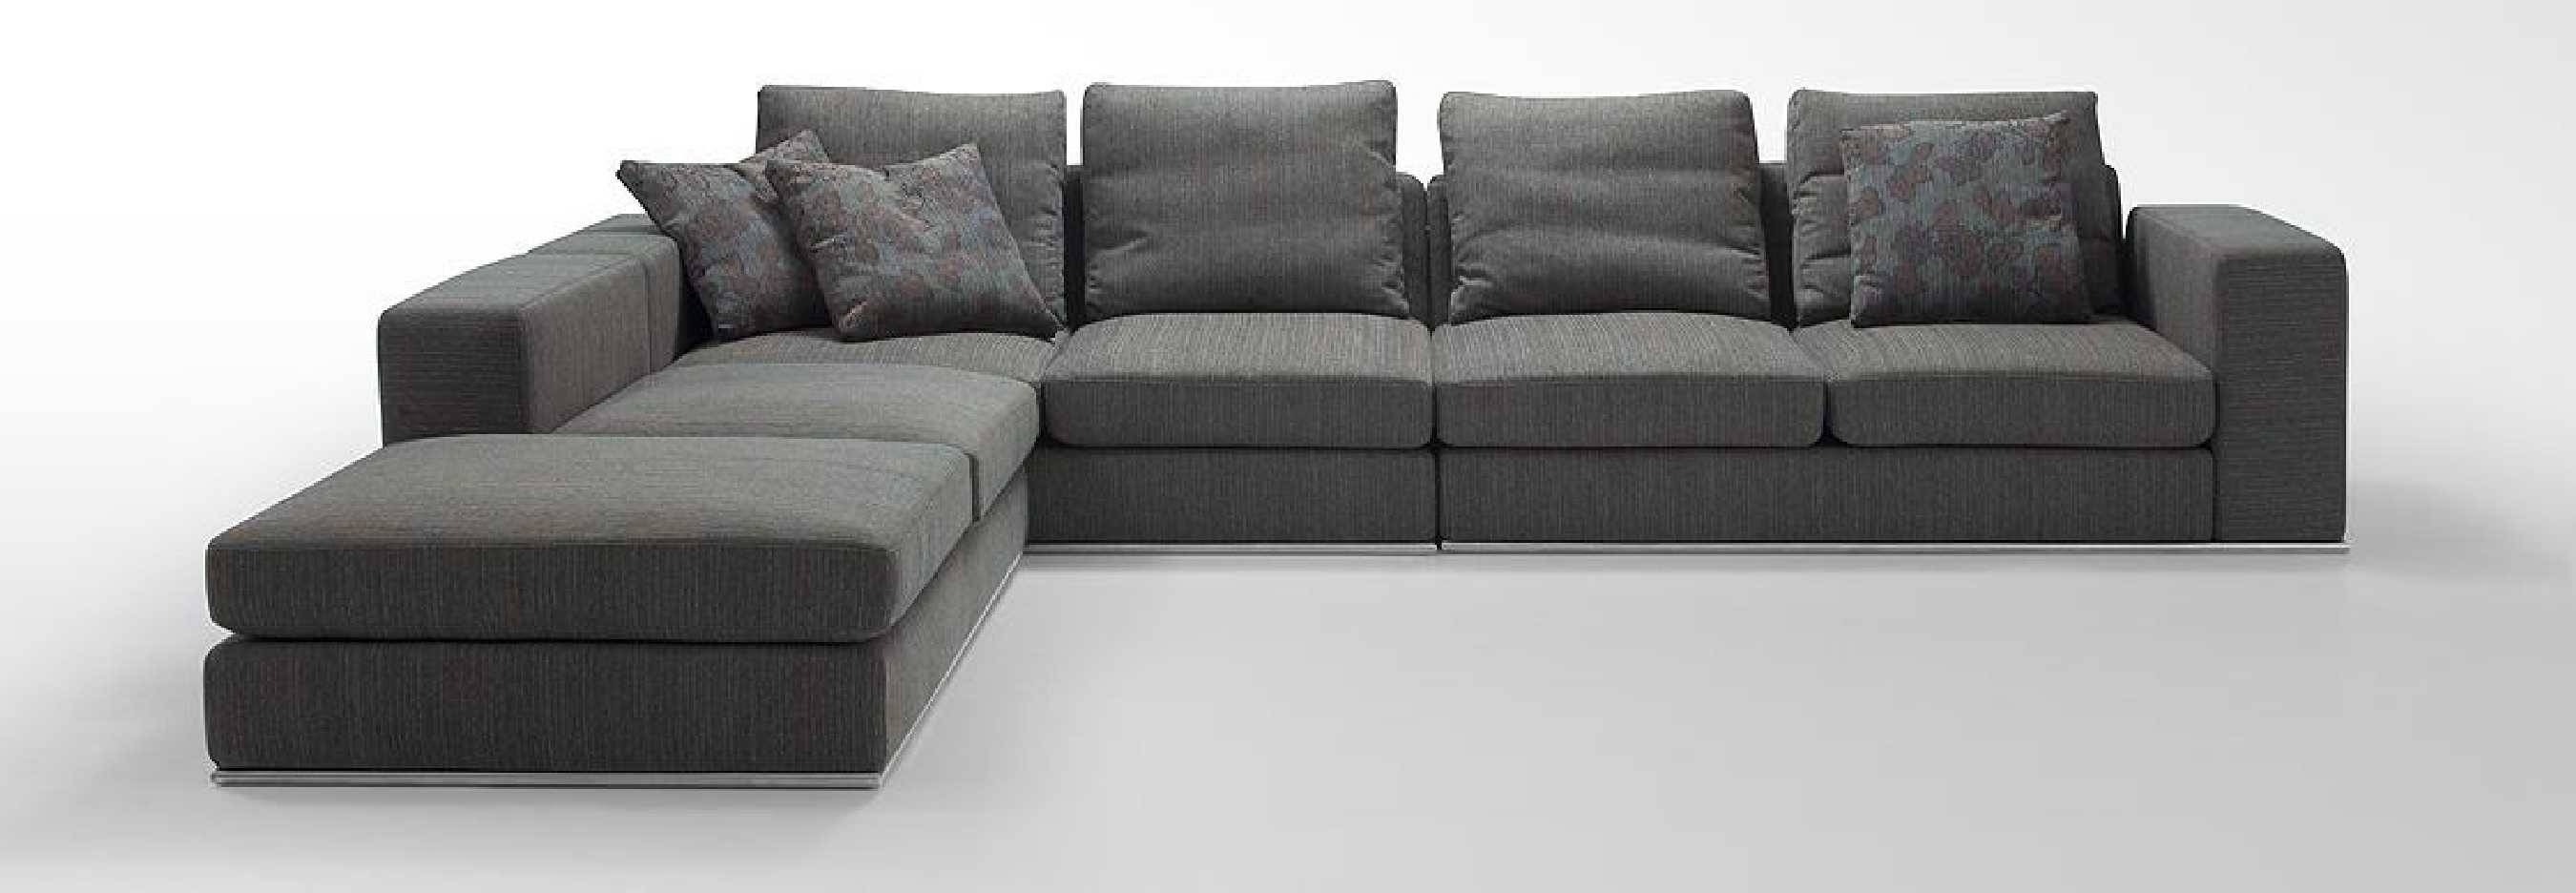 Sofas Center : Grey Sectional Sofa With Chaise Furniture L Shaped for Very Large Sofas (Image 16 of 30)